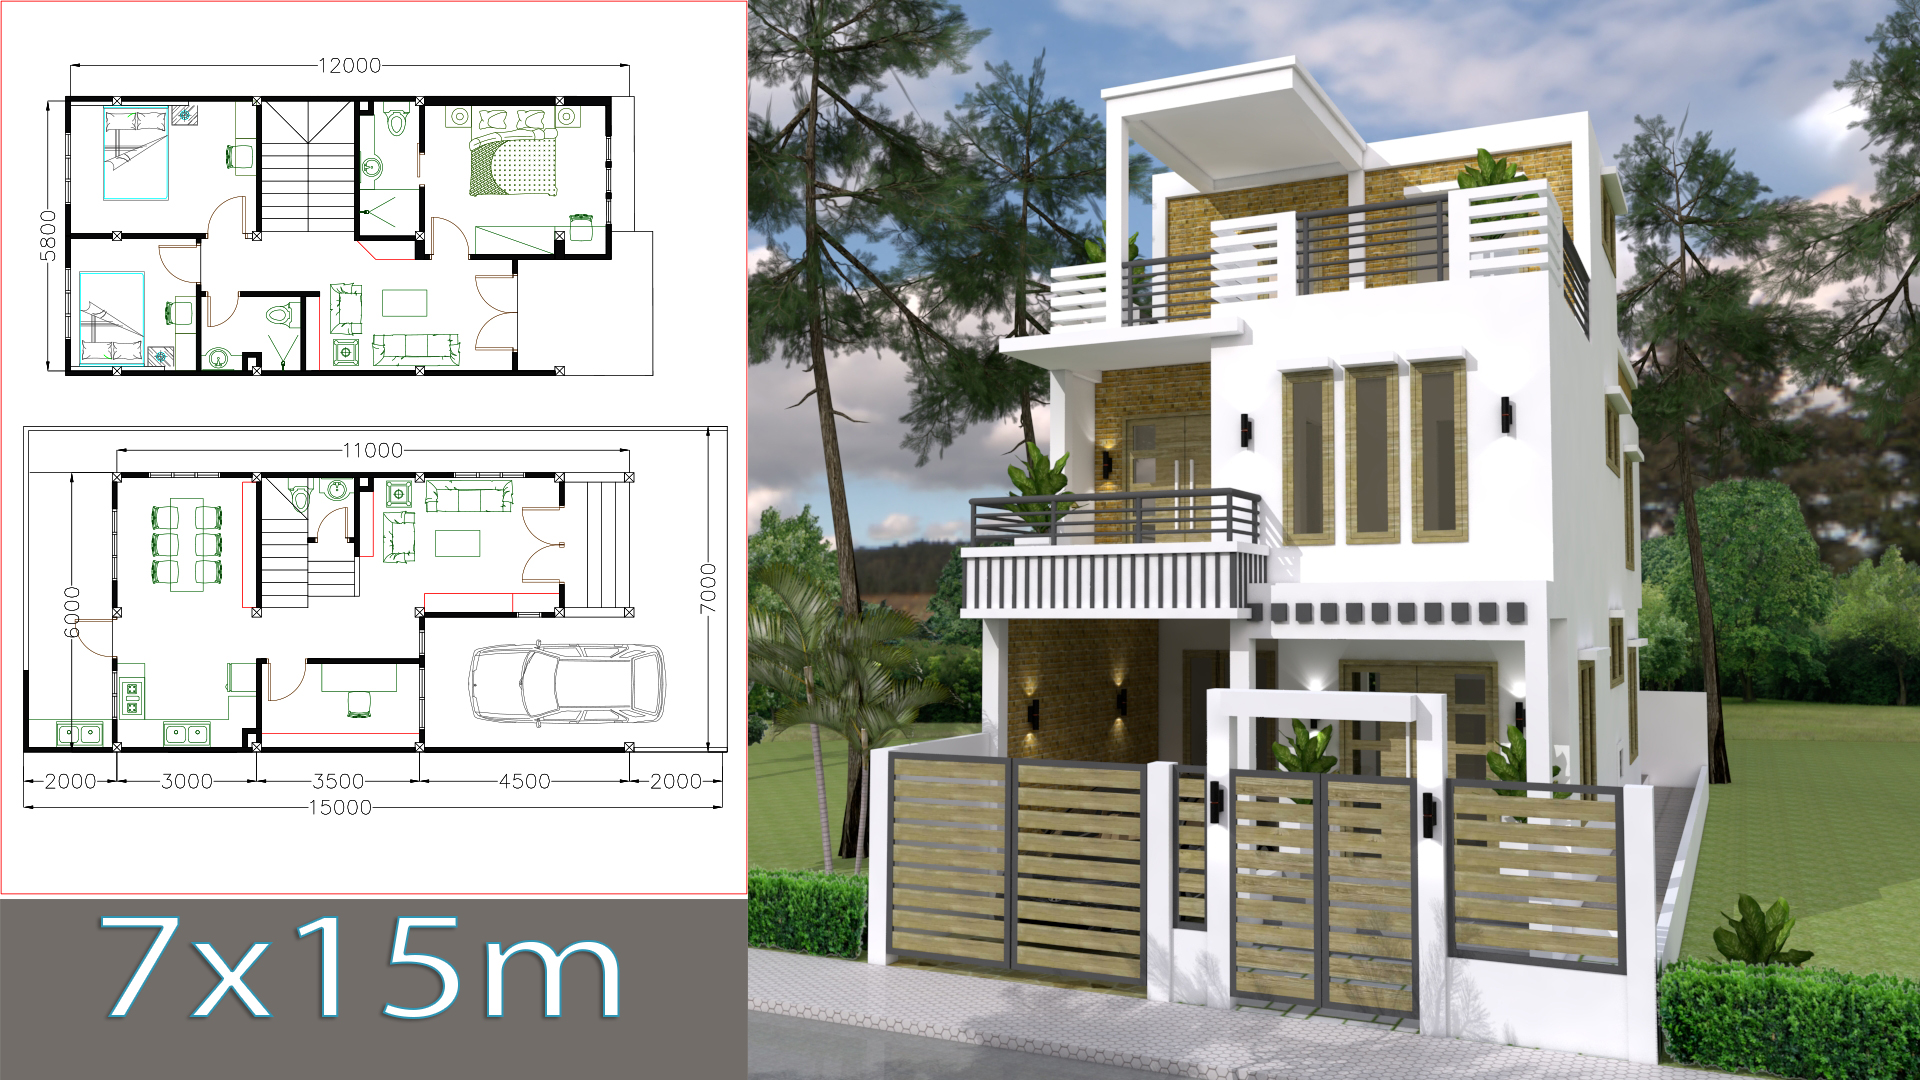 House Plans 7x15m with 3 Bedrooms - Sam House Plans on handicapped homes plans, trailer homes plans, wheelchair in your home, wheelchair blueprints,